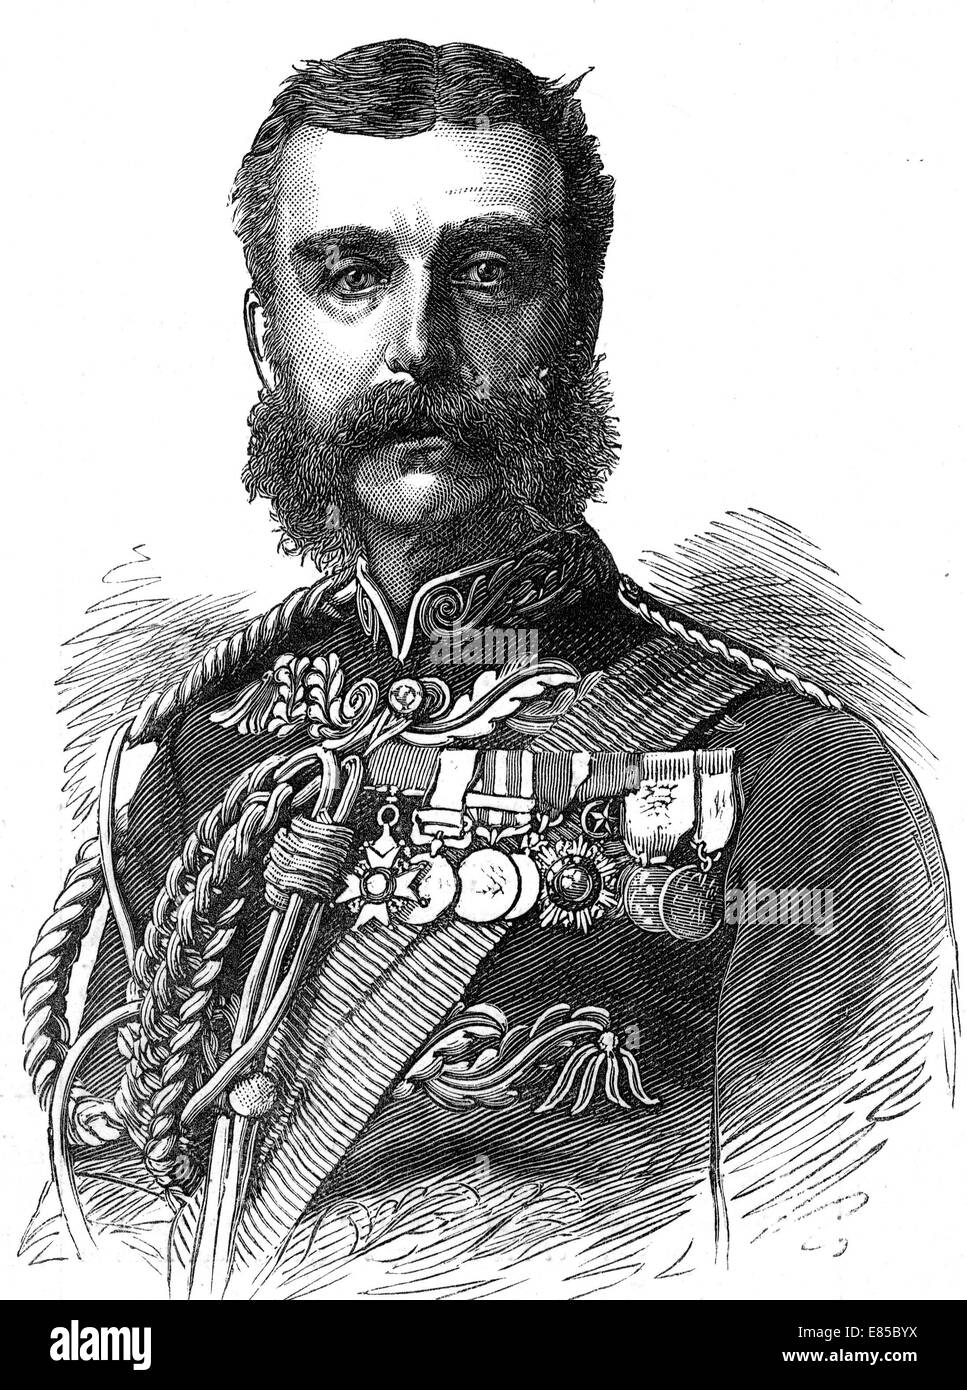 FREDERIC THESIGER, 2nd BARON CHELMSFORD (1827-1905) As Lord Chelmsford about 1879 - Stock Image